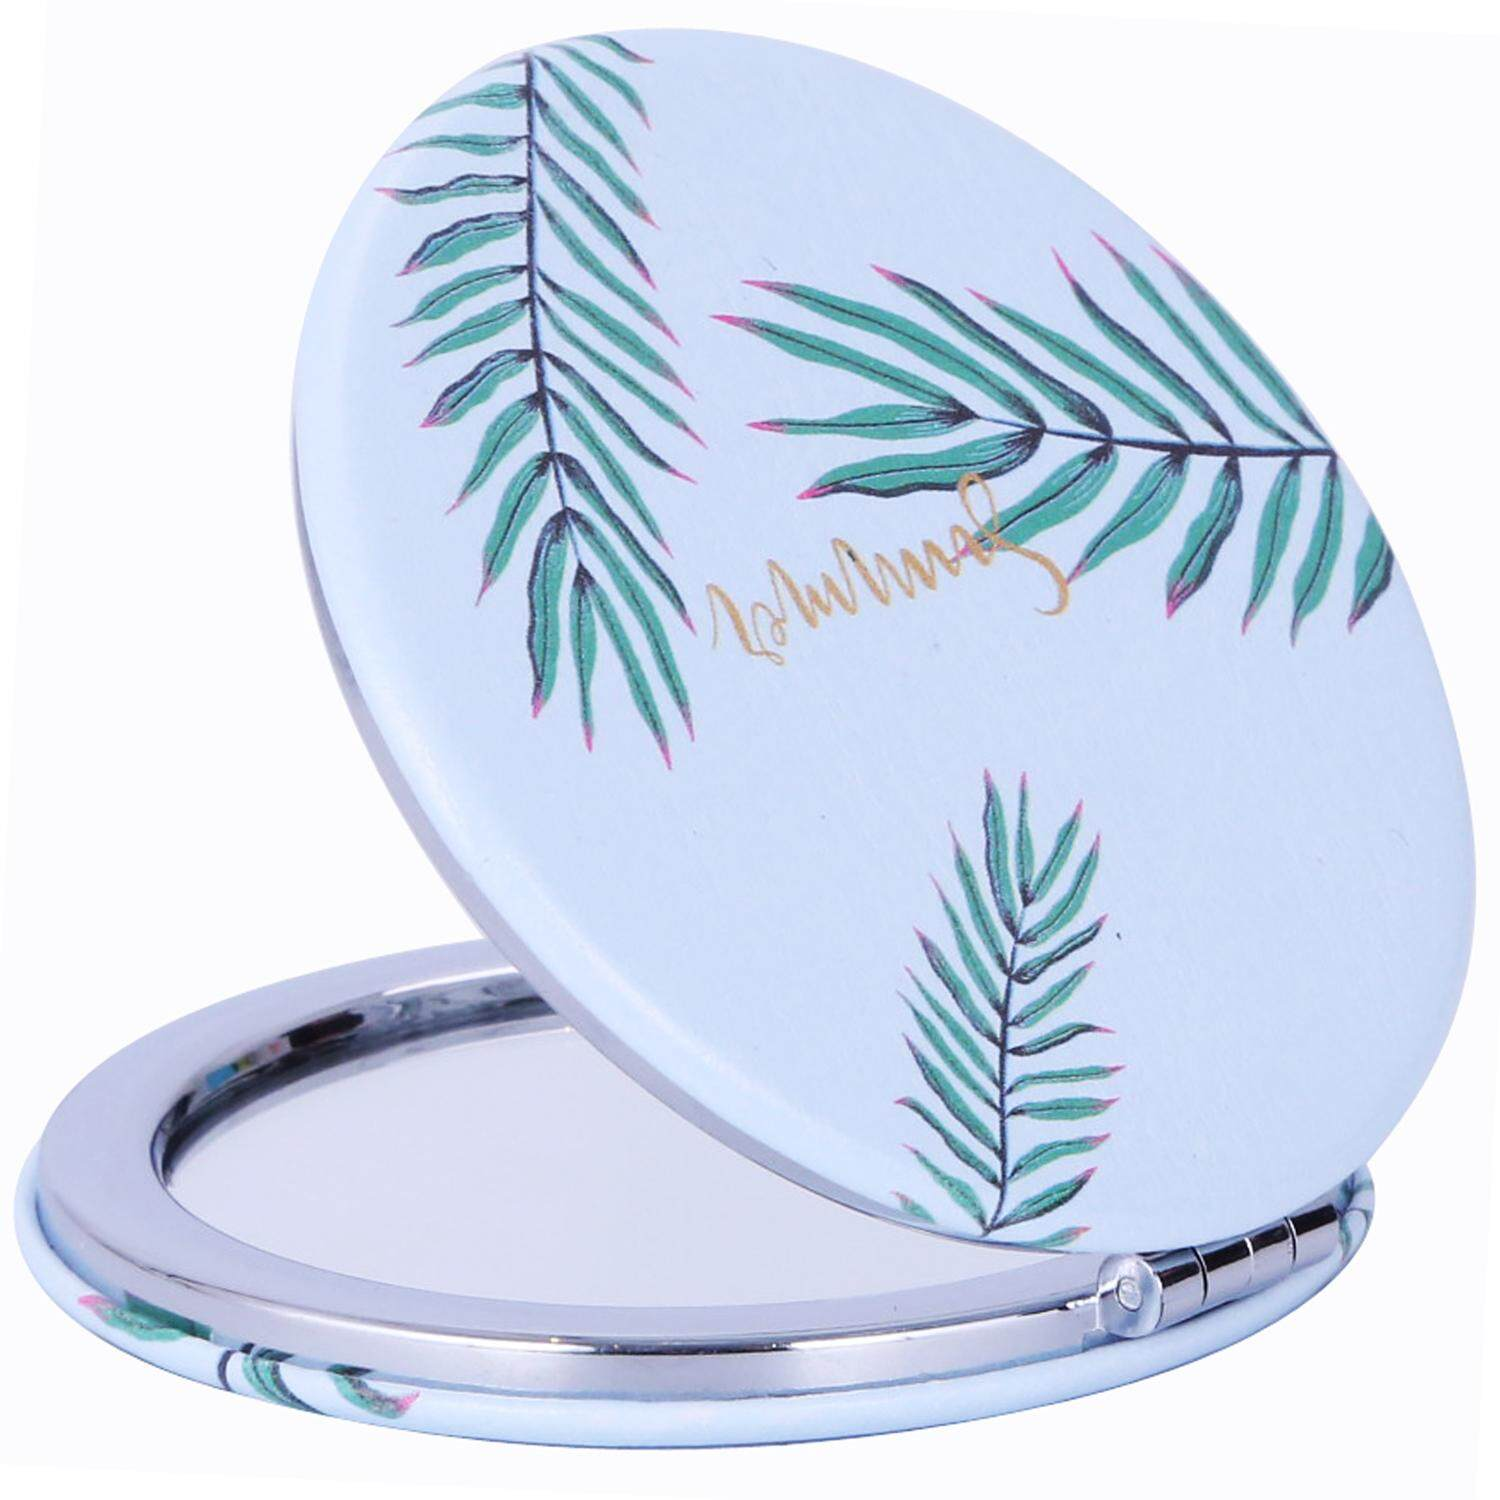 Makeup Mirrors Skin Care Tools Travel Women Make Up Mirror Hand Pocket Heart-shaped Double Folded-side Mirror Cosmetic Portable Fashion Cute New Plastic